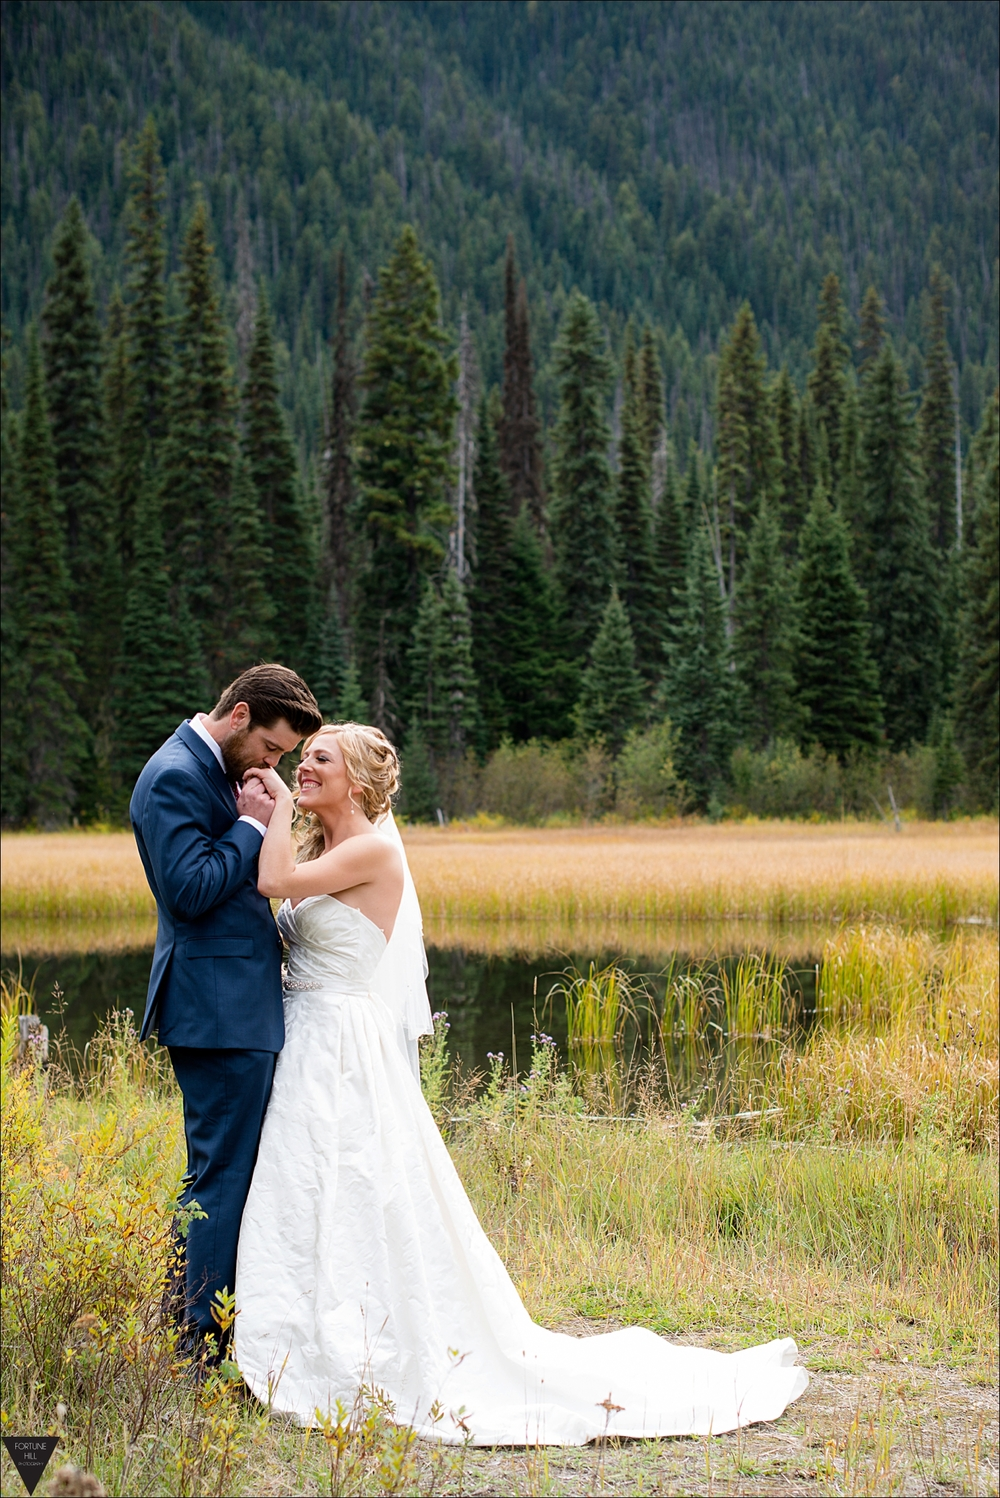 Manning Park wedding pictures